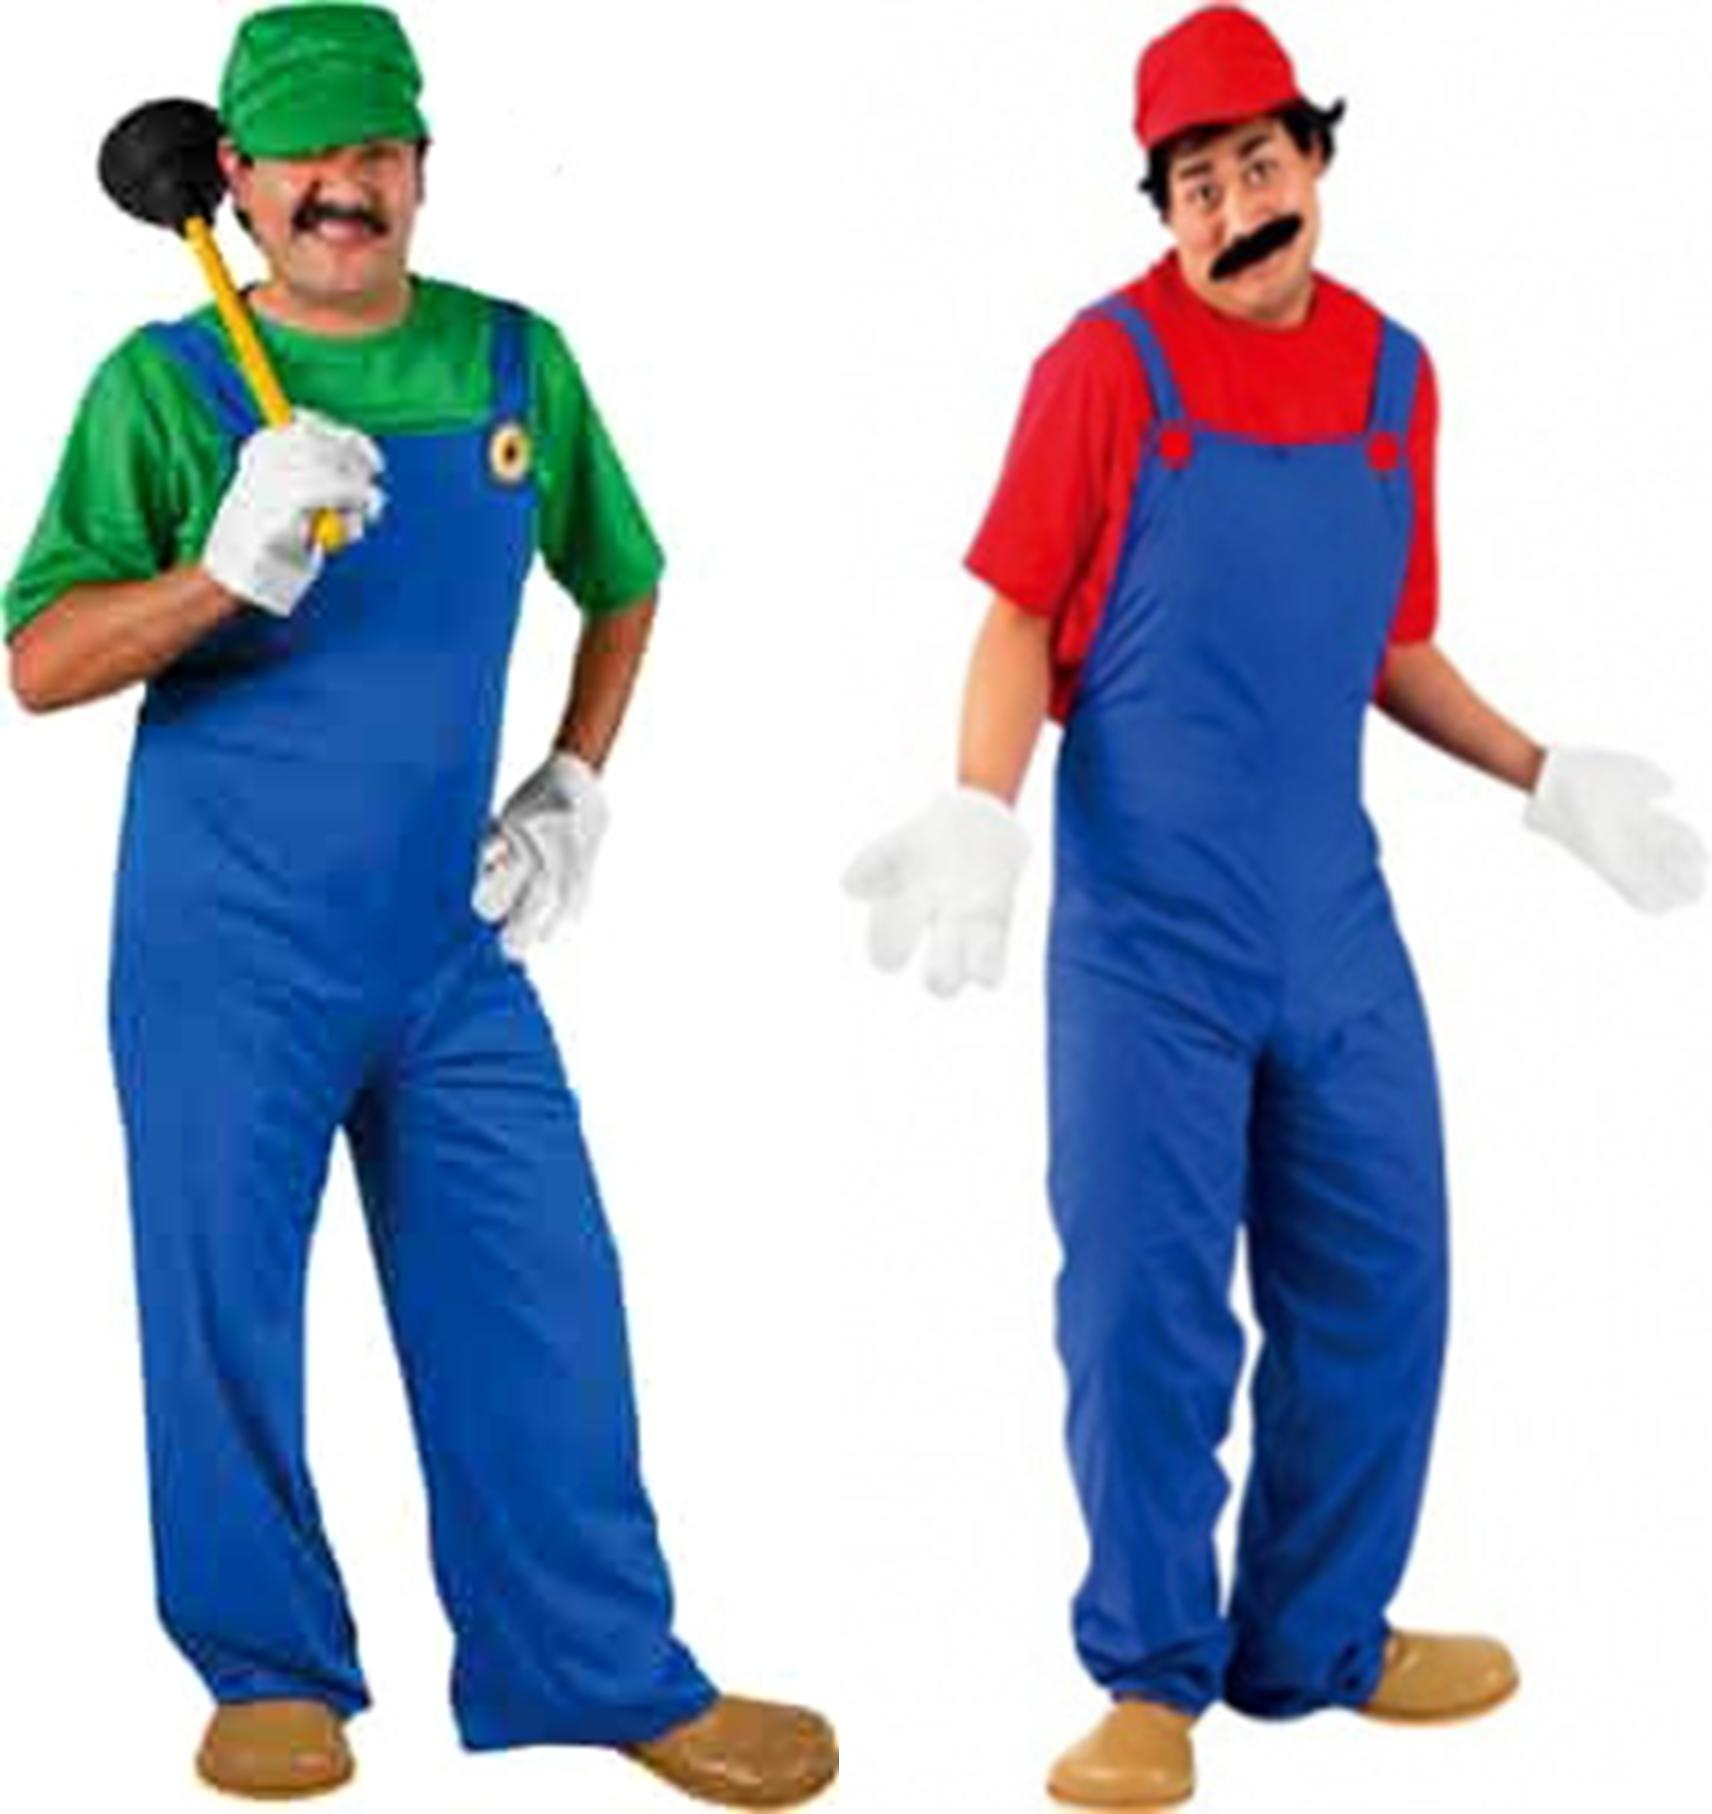 Mario brothers costumes to buy